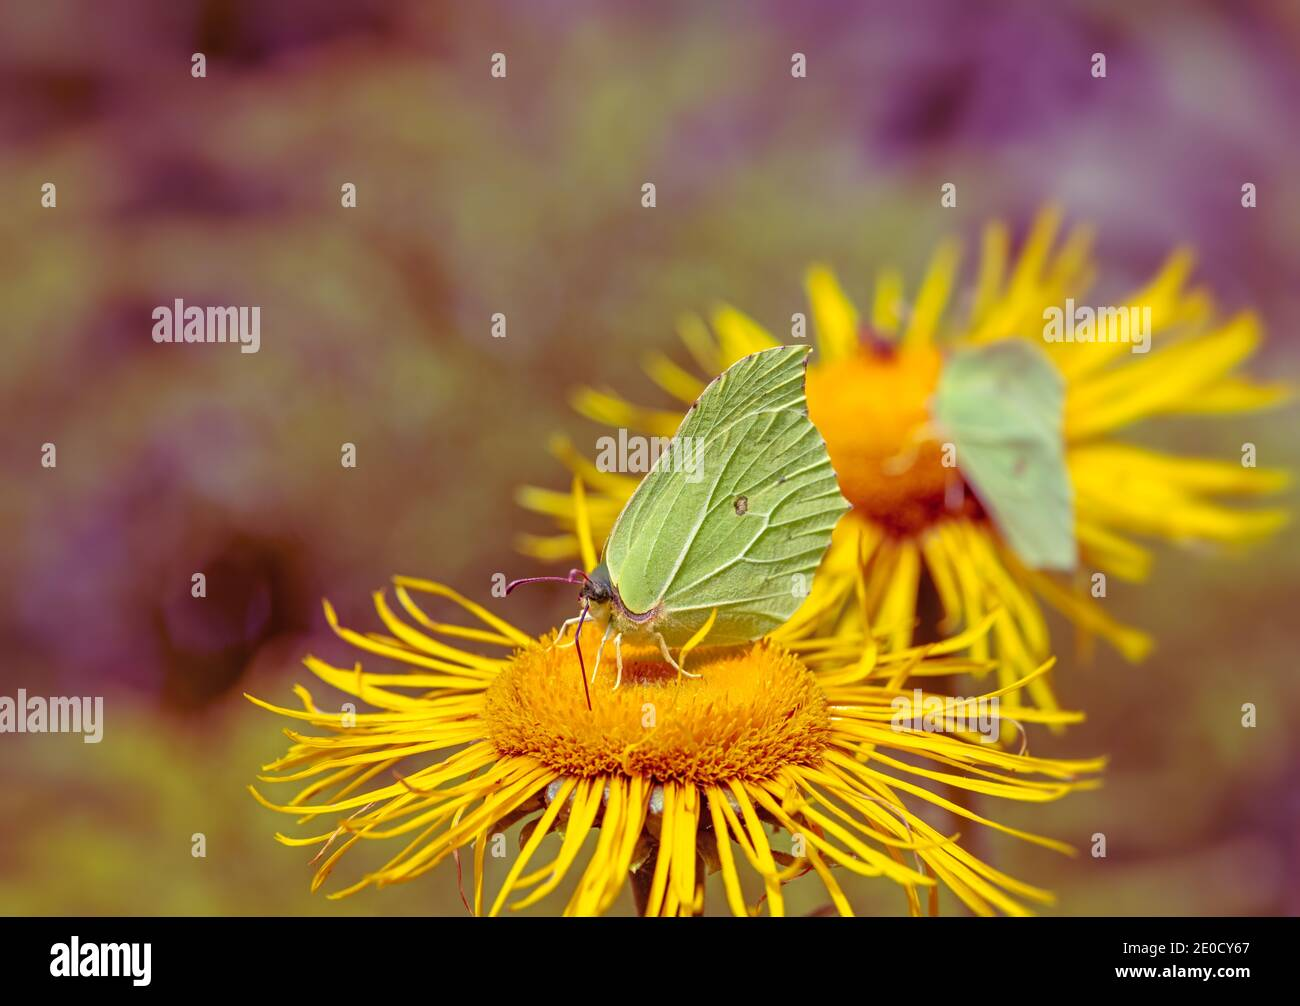 Brimstone butterfly on the blossoms of a yellow flower Stock Photo